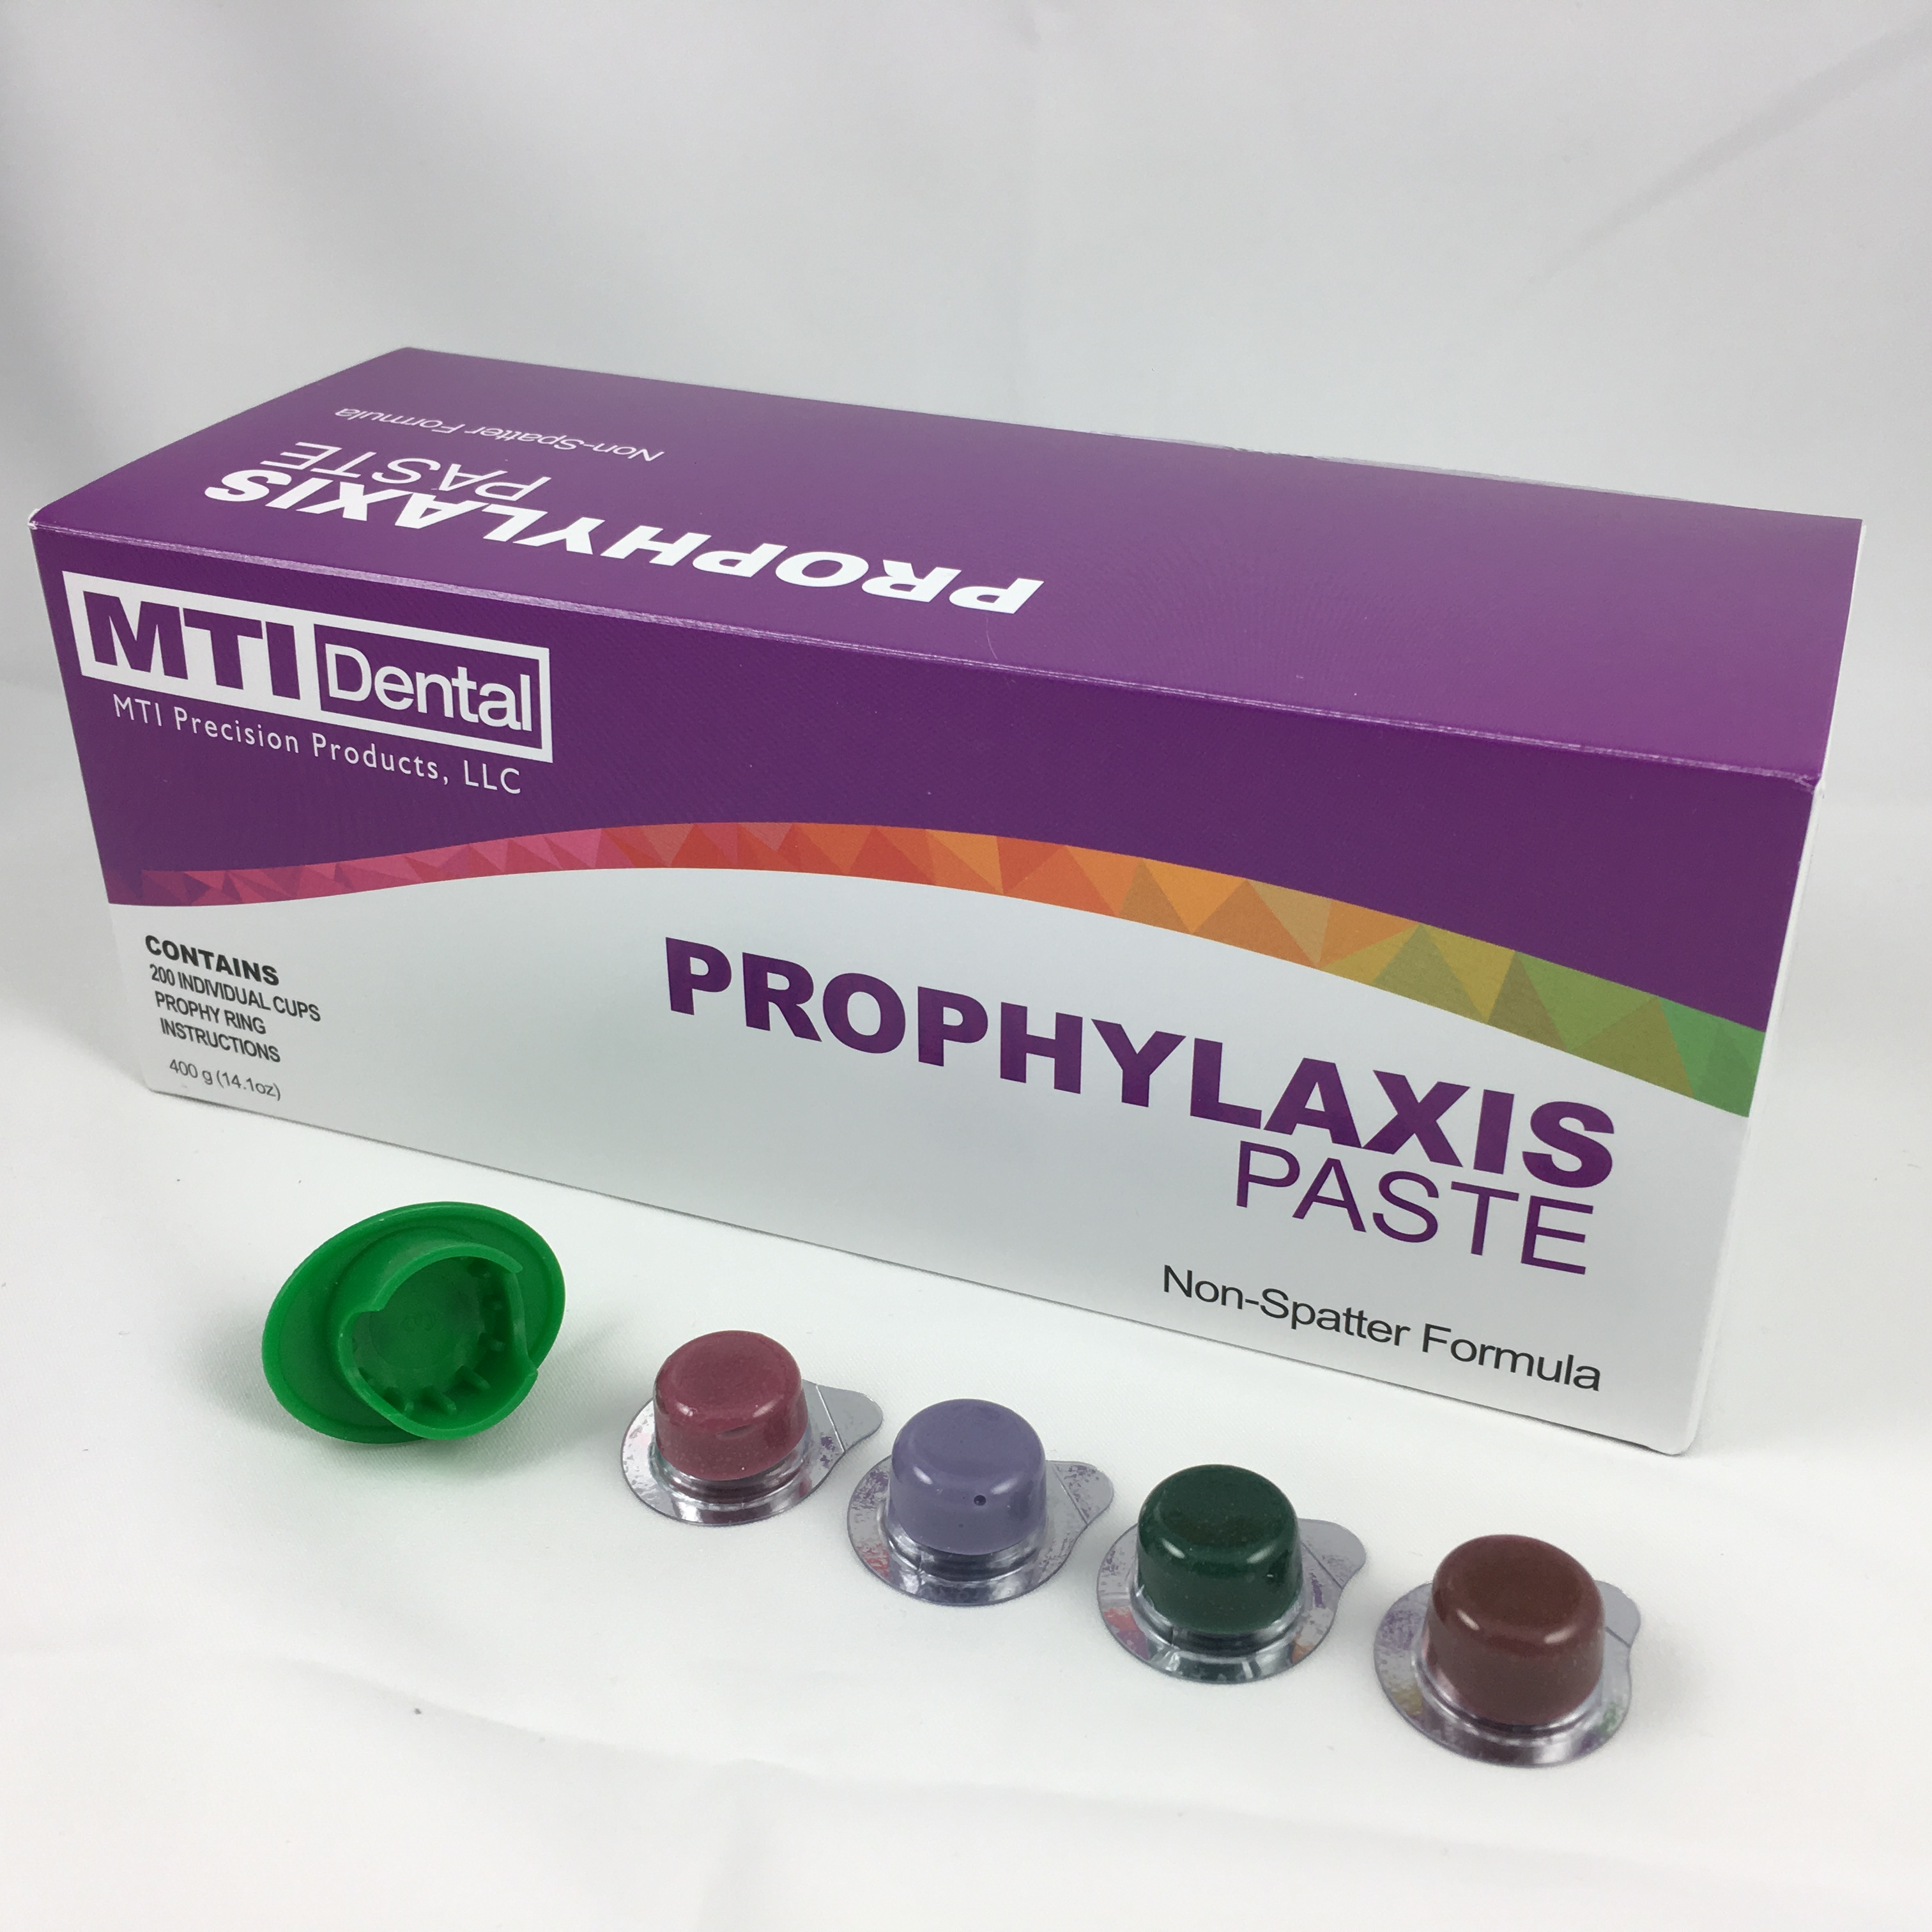 MTI Dental Introduces First Line of Prophylaxis Paste